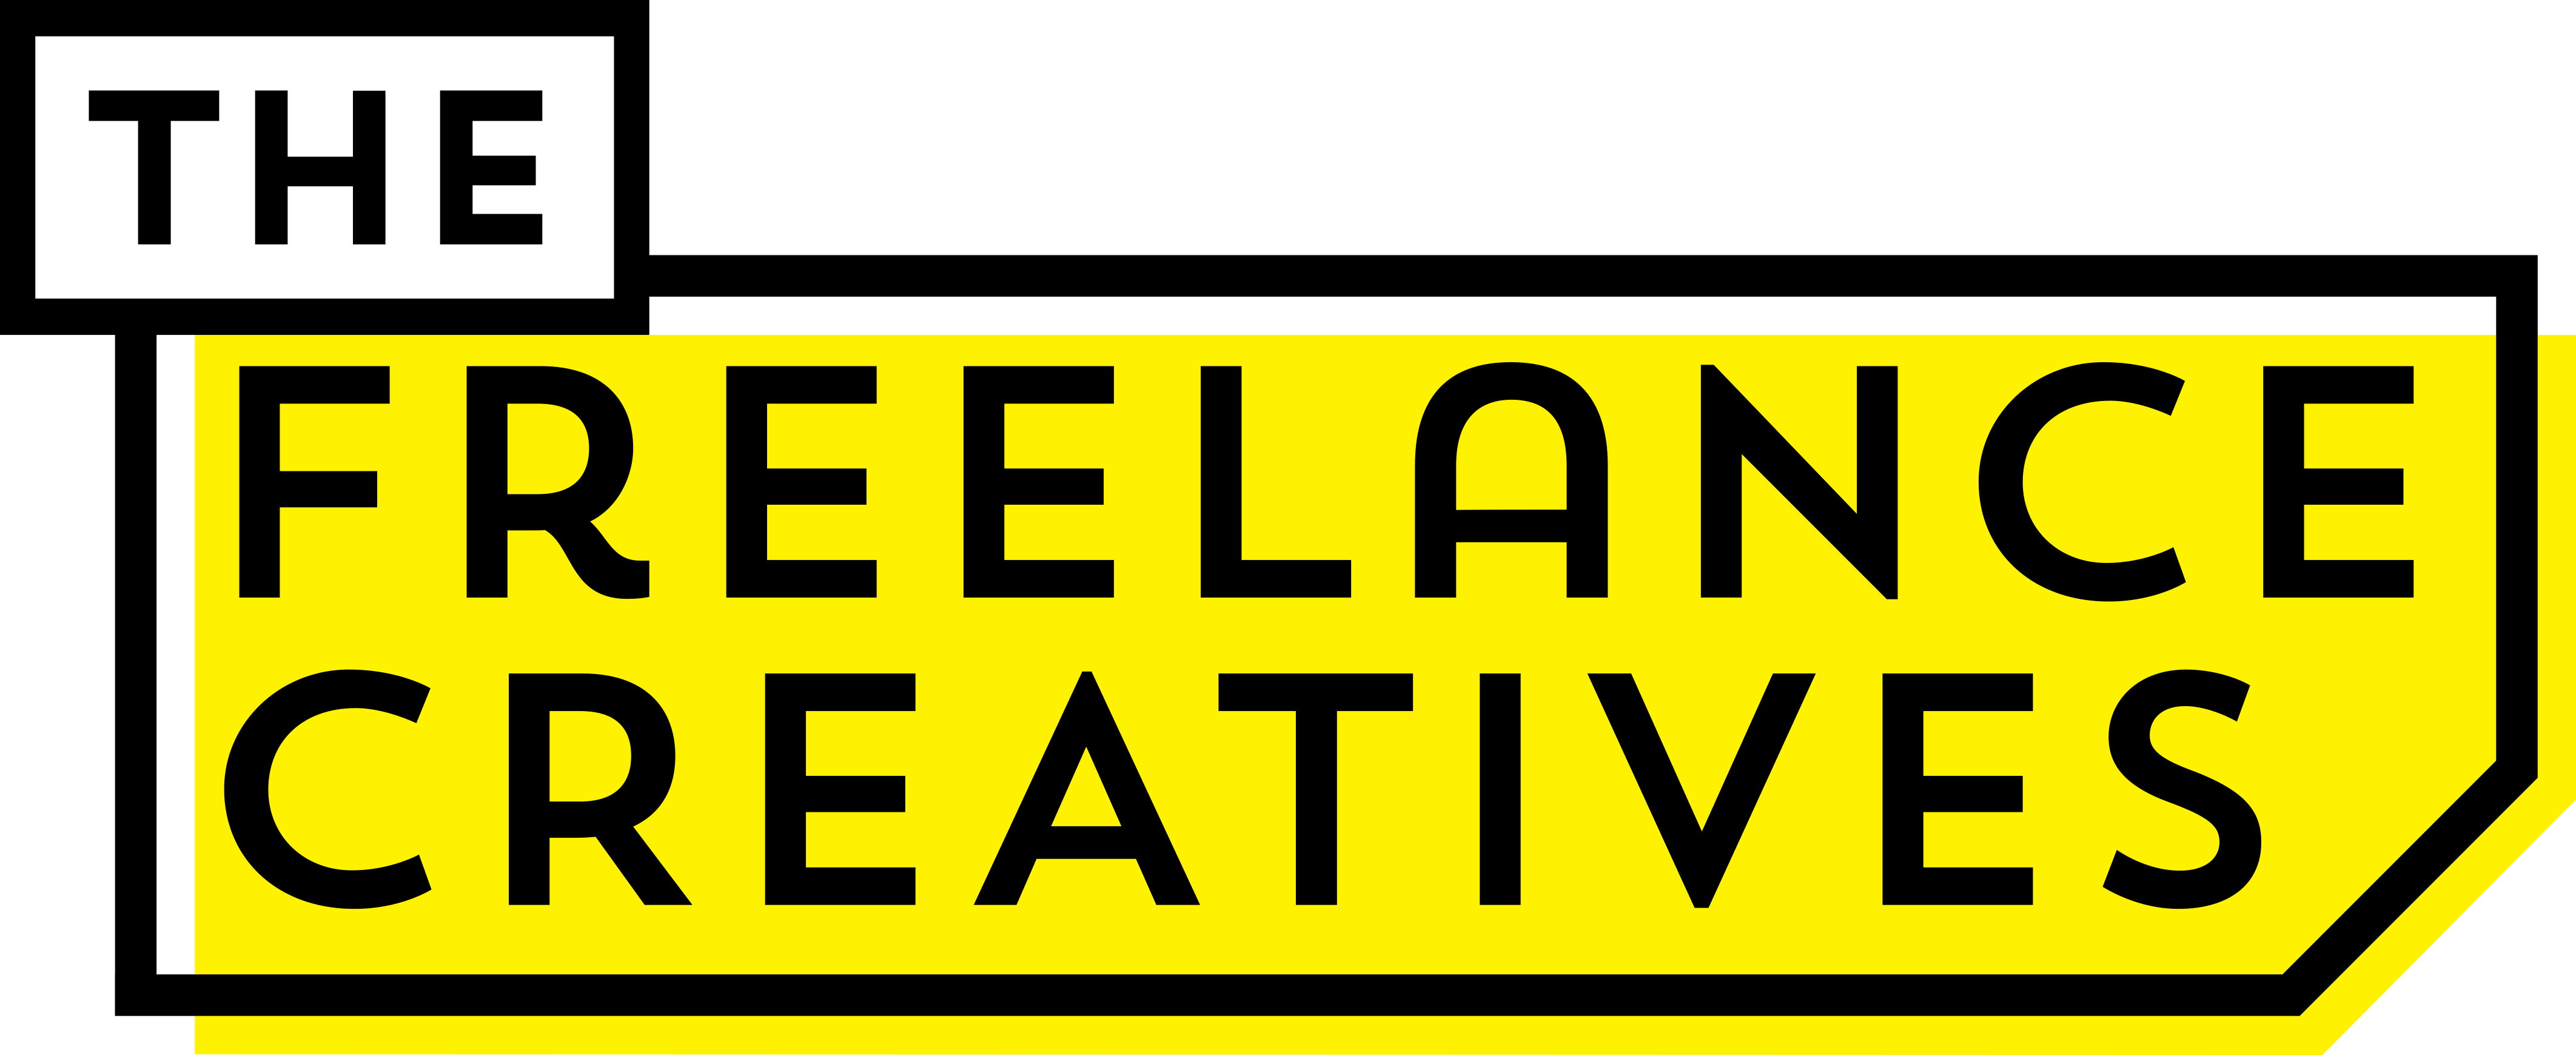 The Freelance Creatives